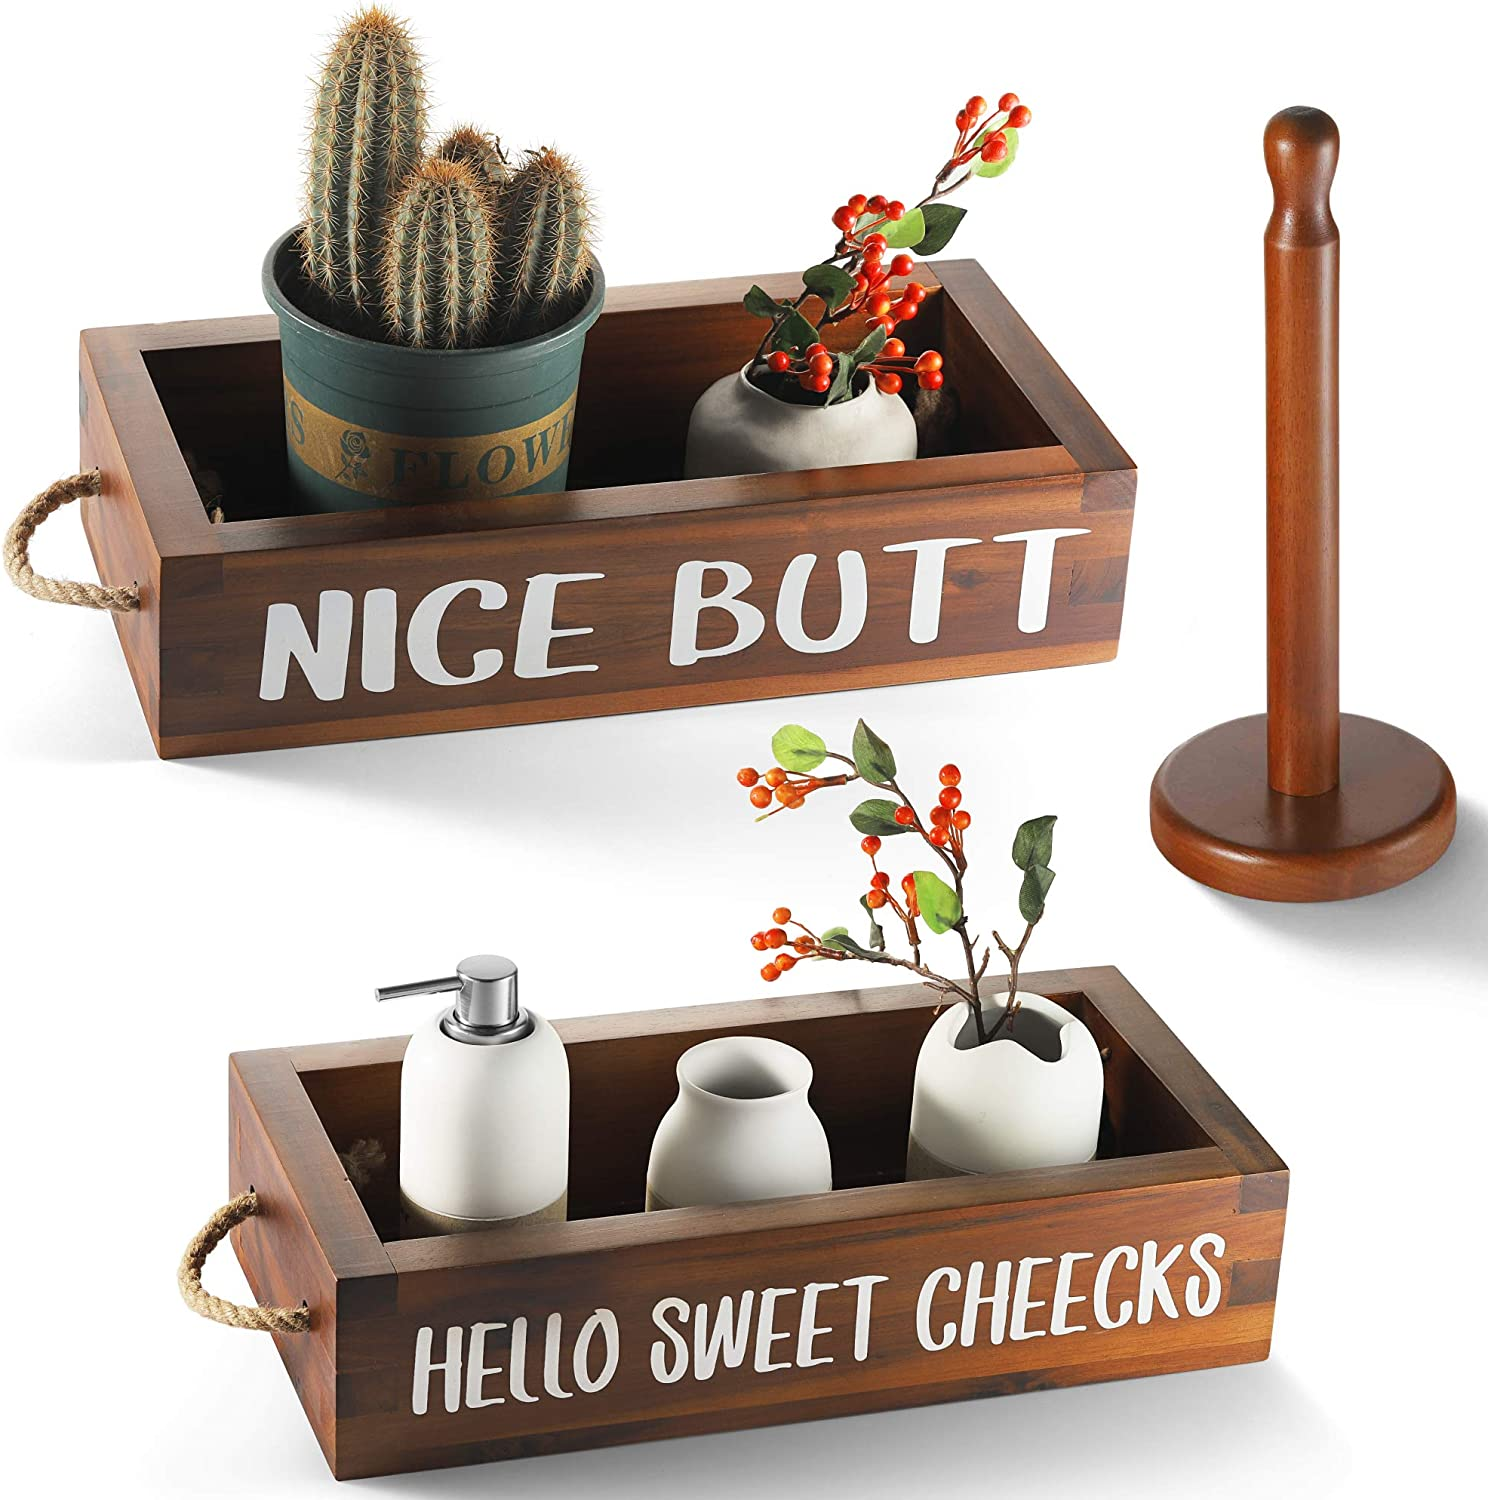 CABASAA Nice Butt Bathroom Decor Box, 2 Sided Funny Toilet Paper Holder, Farmhouse Rustic Wood Organizer, Funny Home Decor, Wooden Crate with Rope Handles(Brown)